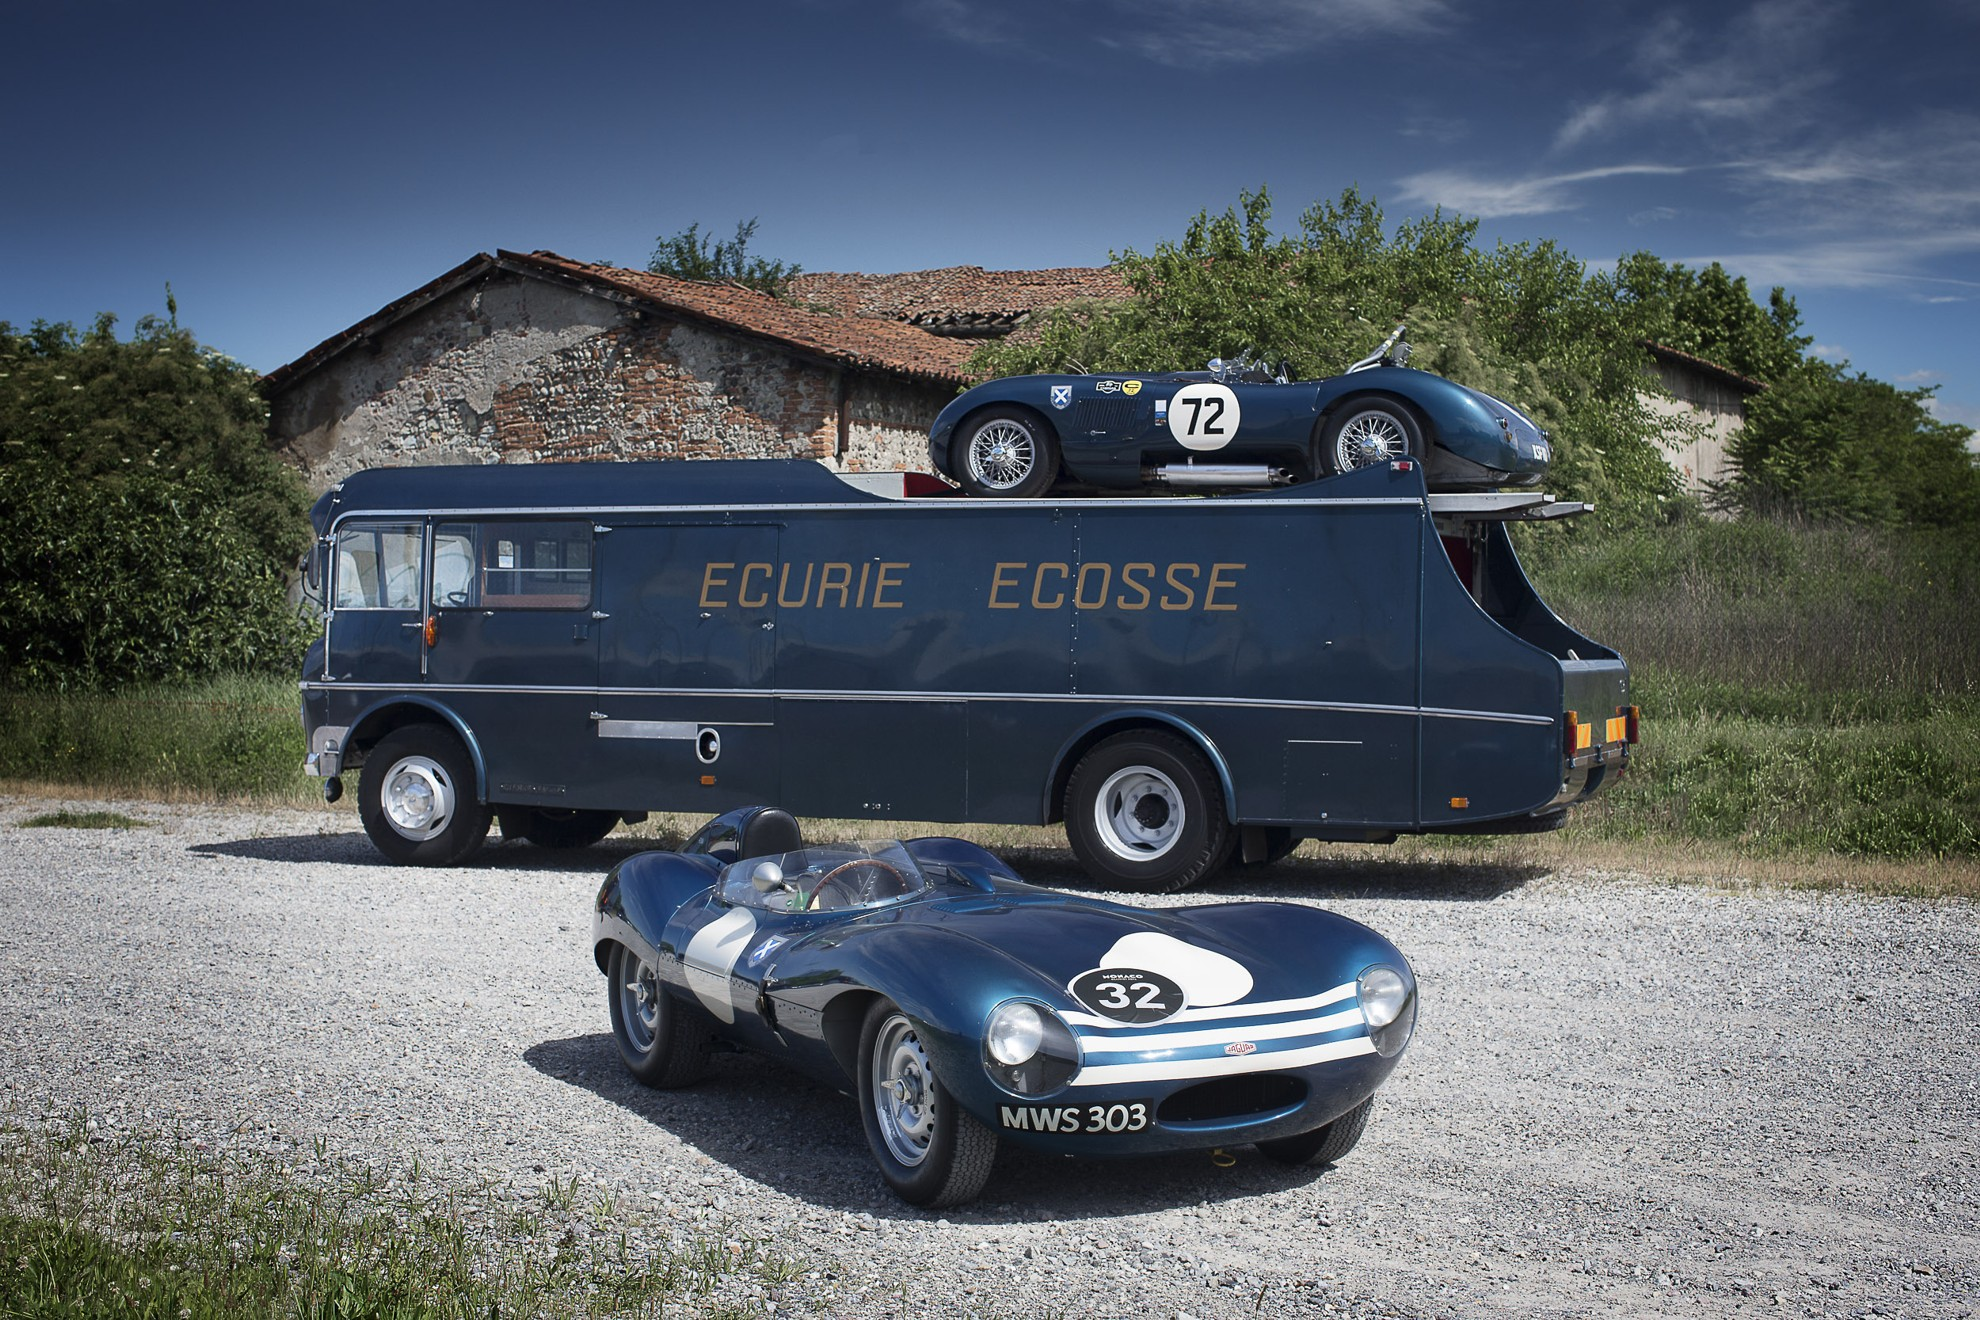 Jay Leno Joins Ian Callum In Ecurie Ecosse Legend For The 2014 Mille Miglia in addition Chris Evans Reviews Dacia Duster Laureate DCi 110 Lidl Cars Wouldn T Big Bargain Dacia Duster No Bells No Whistles Just HVFM Huge Value Money additionally A Closer Look At Aimgain Japan The Celsior additionally 250 Esso Bedford Tanker as well Watch. on old cars that start with a t